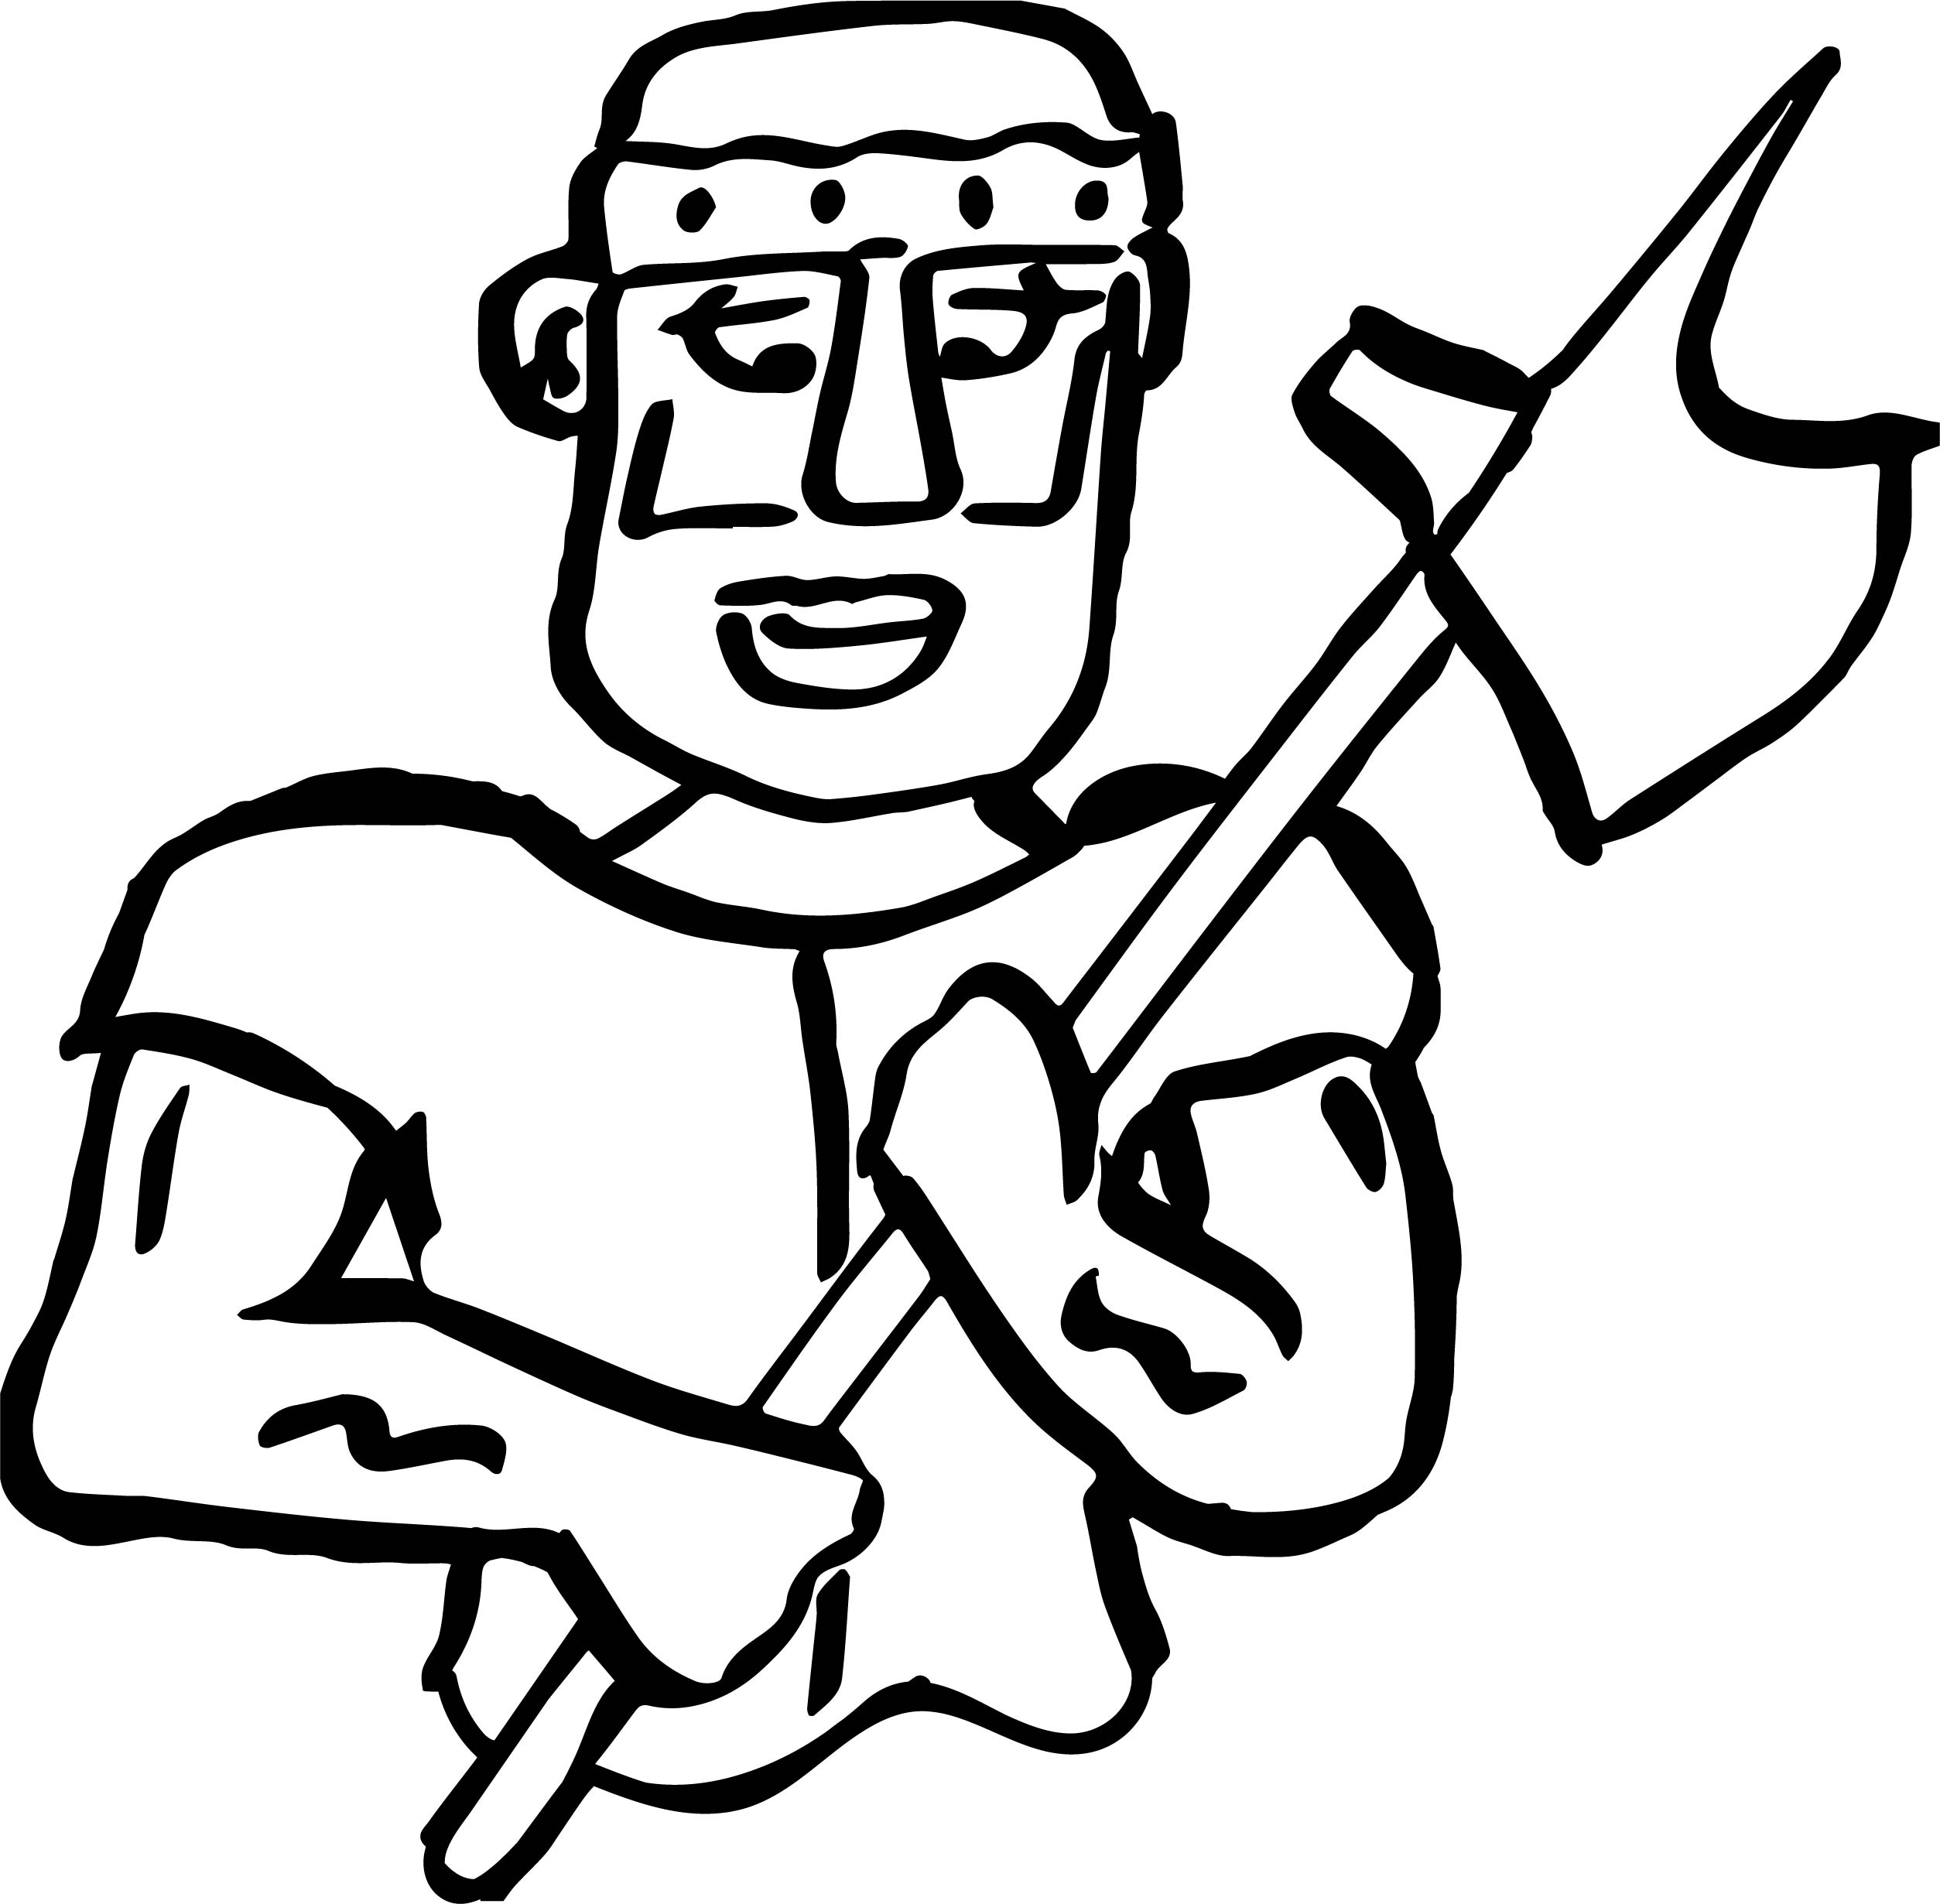 roman soldier diagram 3 way switch wiring with dimmer axe coloring page wecoloringpage